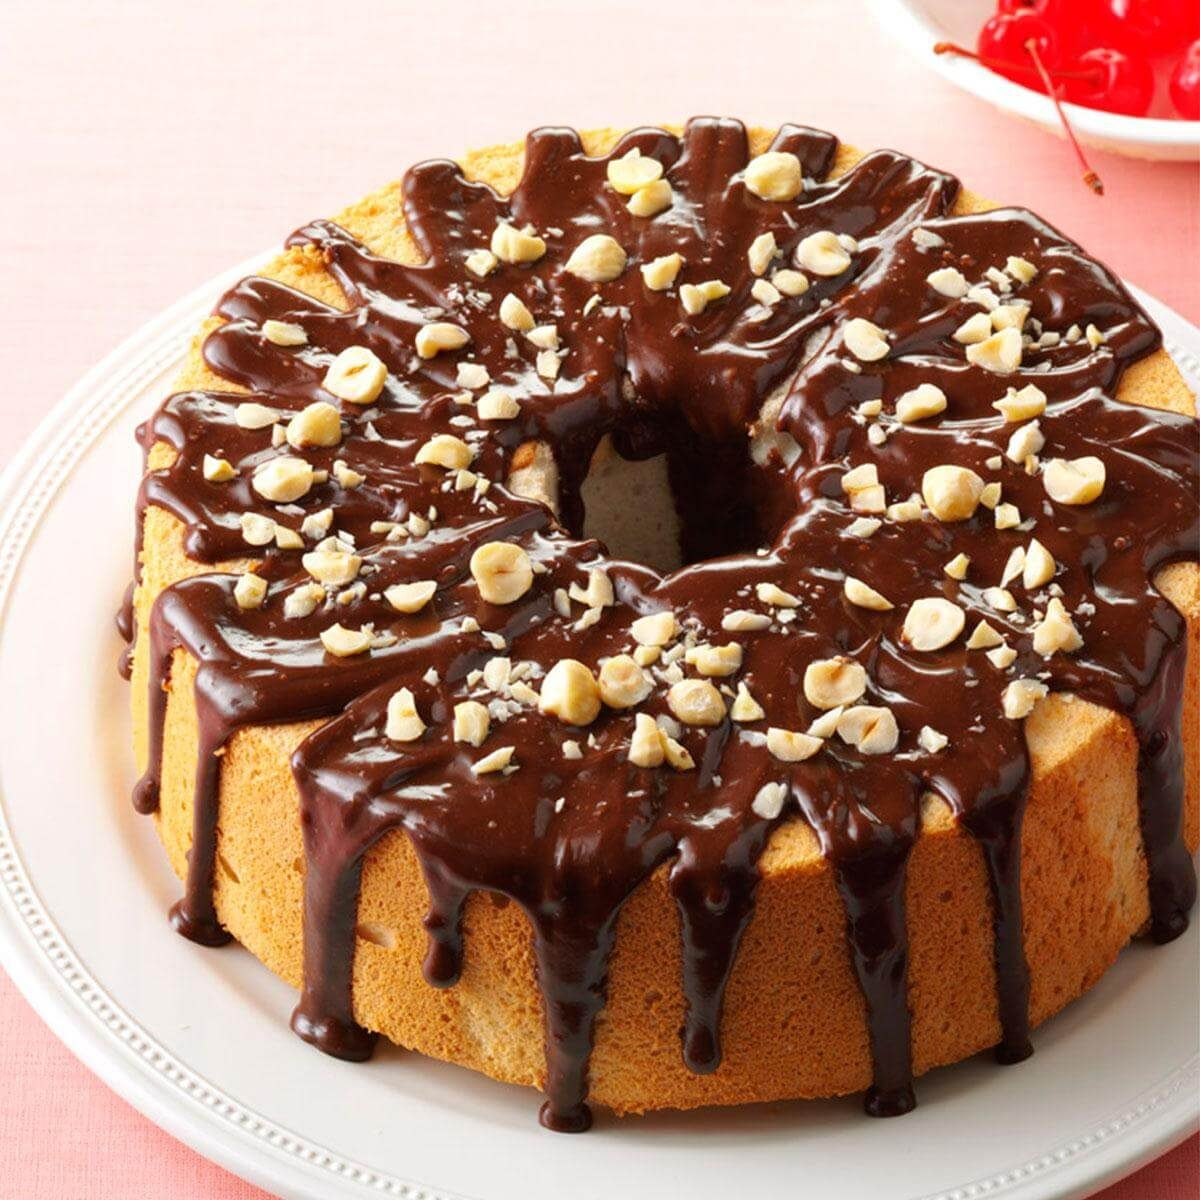 mocha hazelnut glazed angle food cake